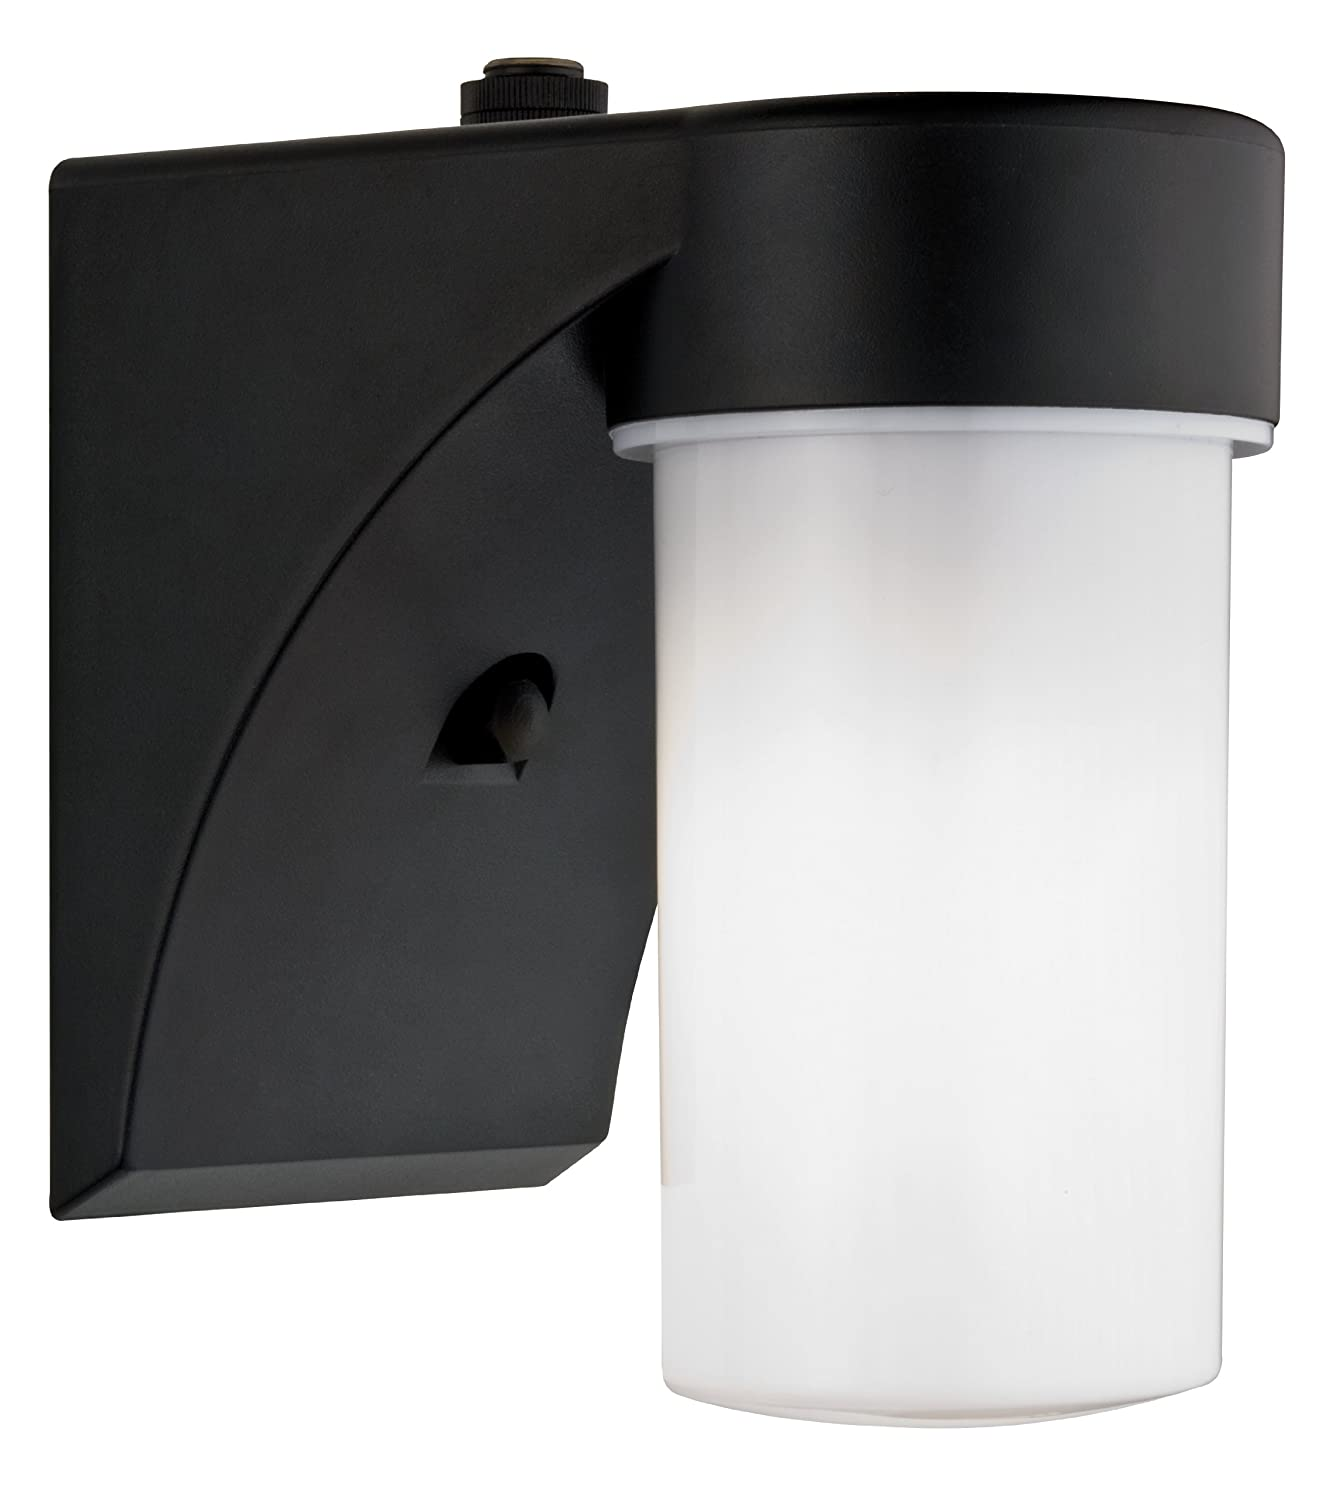 Lithonia Lighting OSC 13F 120 P LP BL M6 Outdoor Cylinder Wall Light with Dusk to Dawn Photocell Black - Wall Porch Lights - Amazon.com  sc 1 st  Amazon.com & Lithonia Lighting OSC 13F 120 P LP BL M6 Outdoor Cylinder Wall Light ...